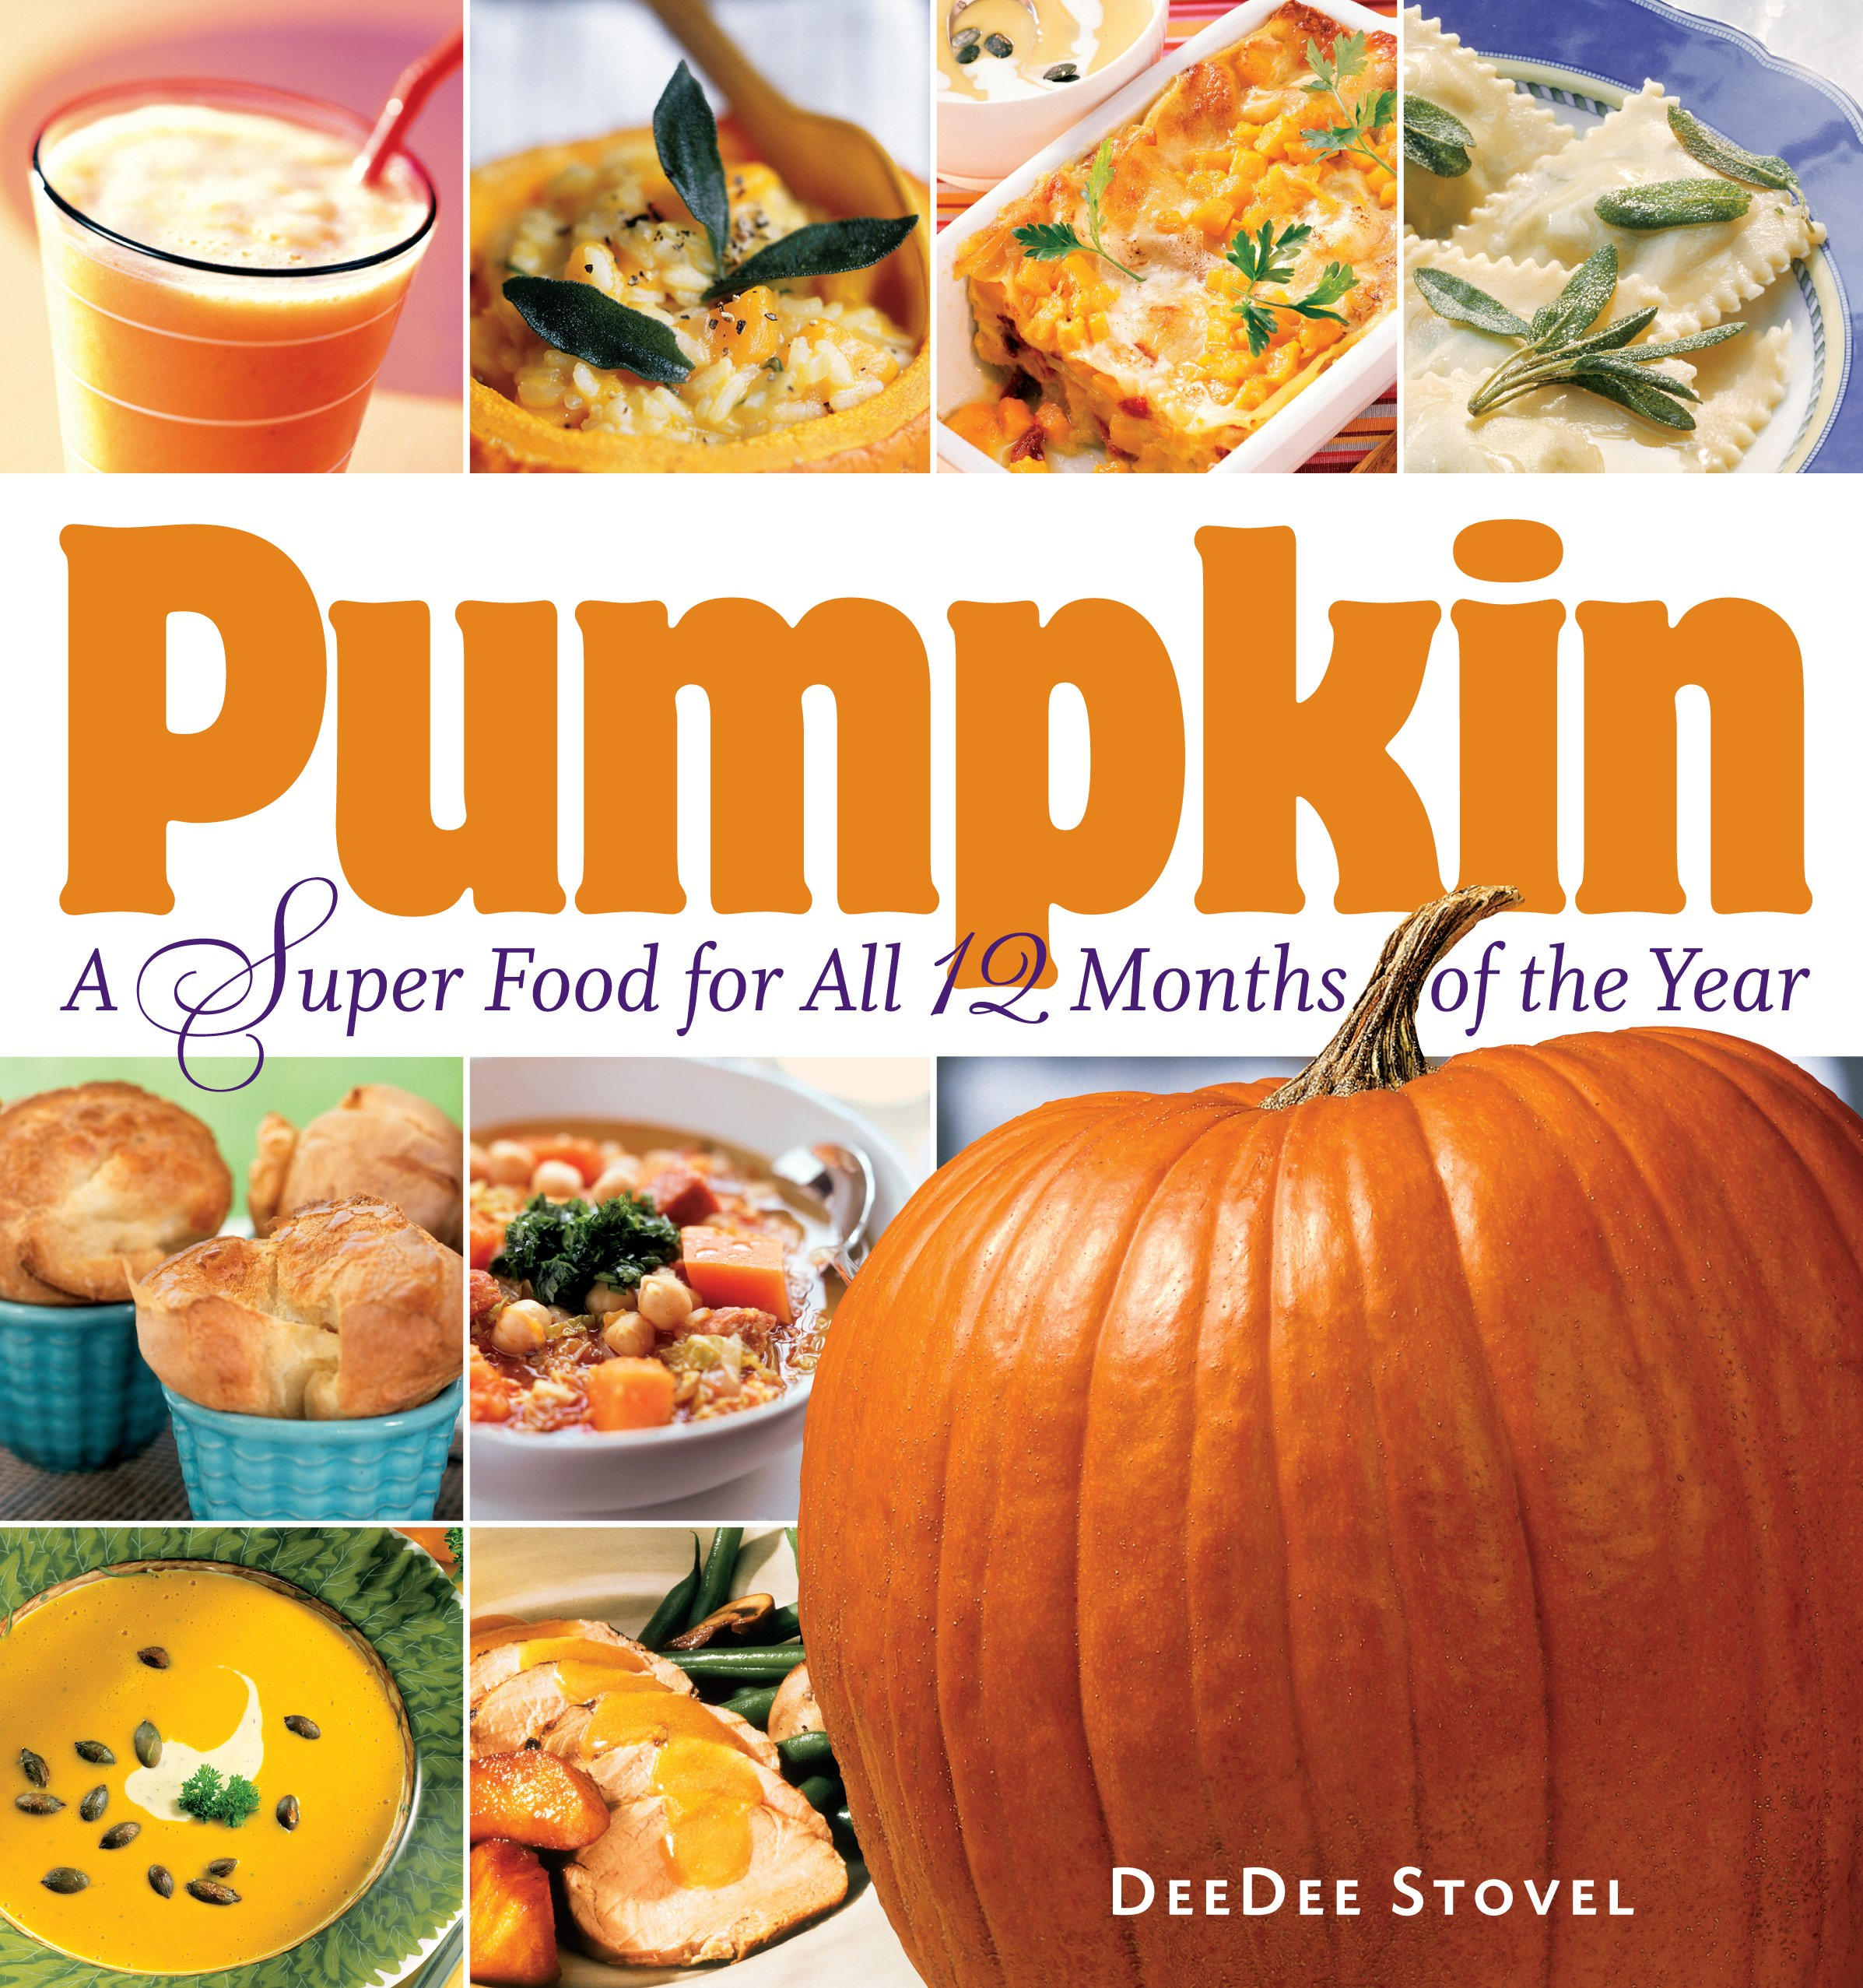 pumpkin a super food for all 12 months of the year deedee stovel